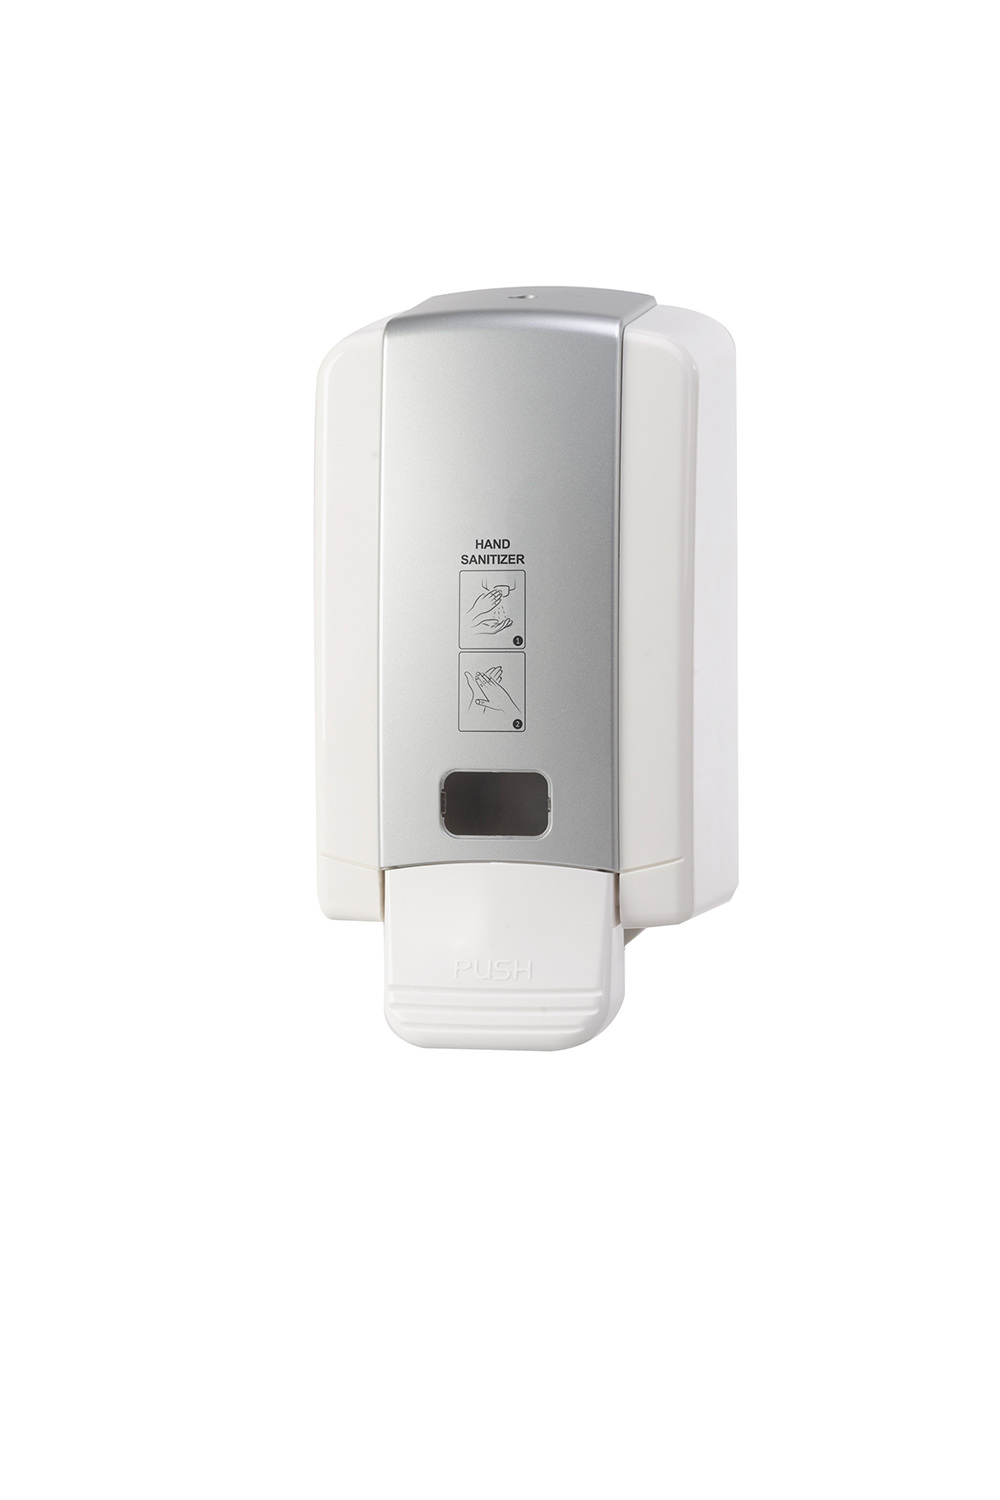 Hand Sanitizer Dispenser 500ml Duprex Singapore